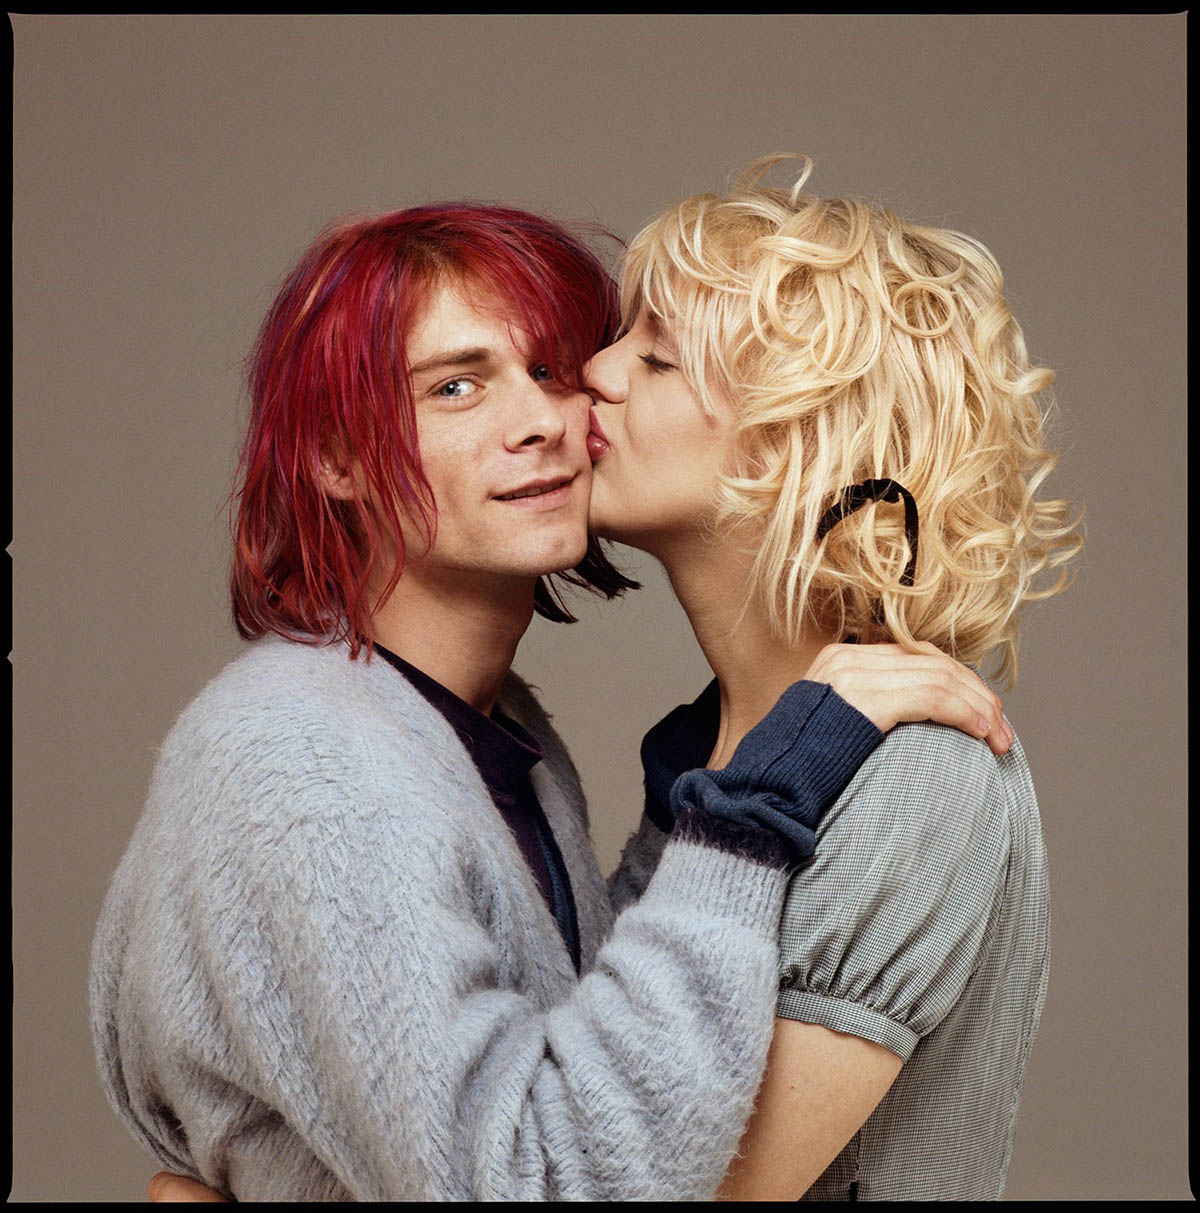 Kurt Cobain e Courtney Love, gennaio 1992 © Foto Michael Lavine